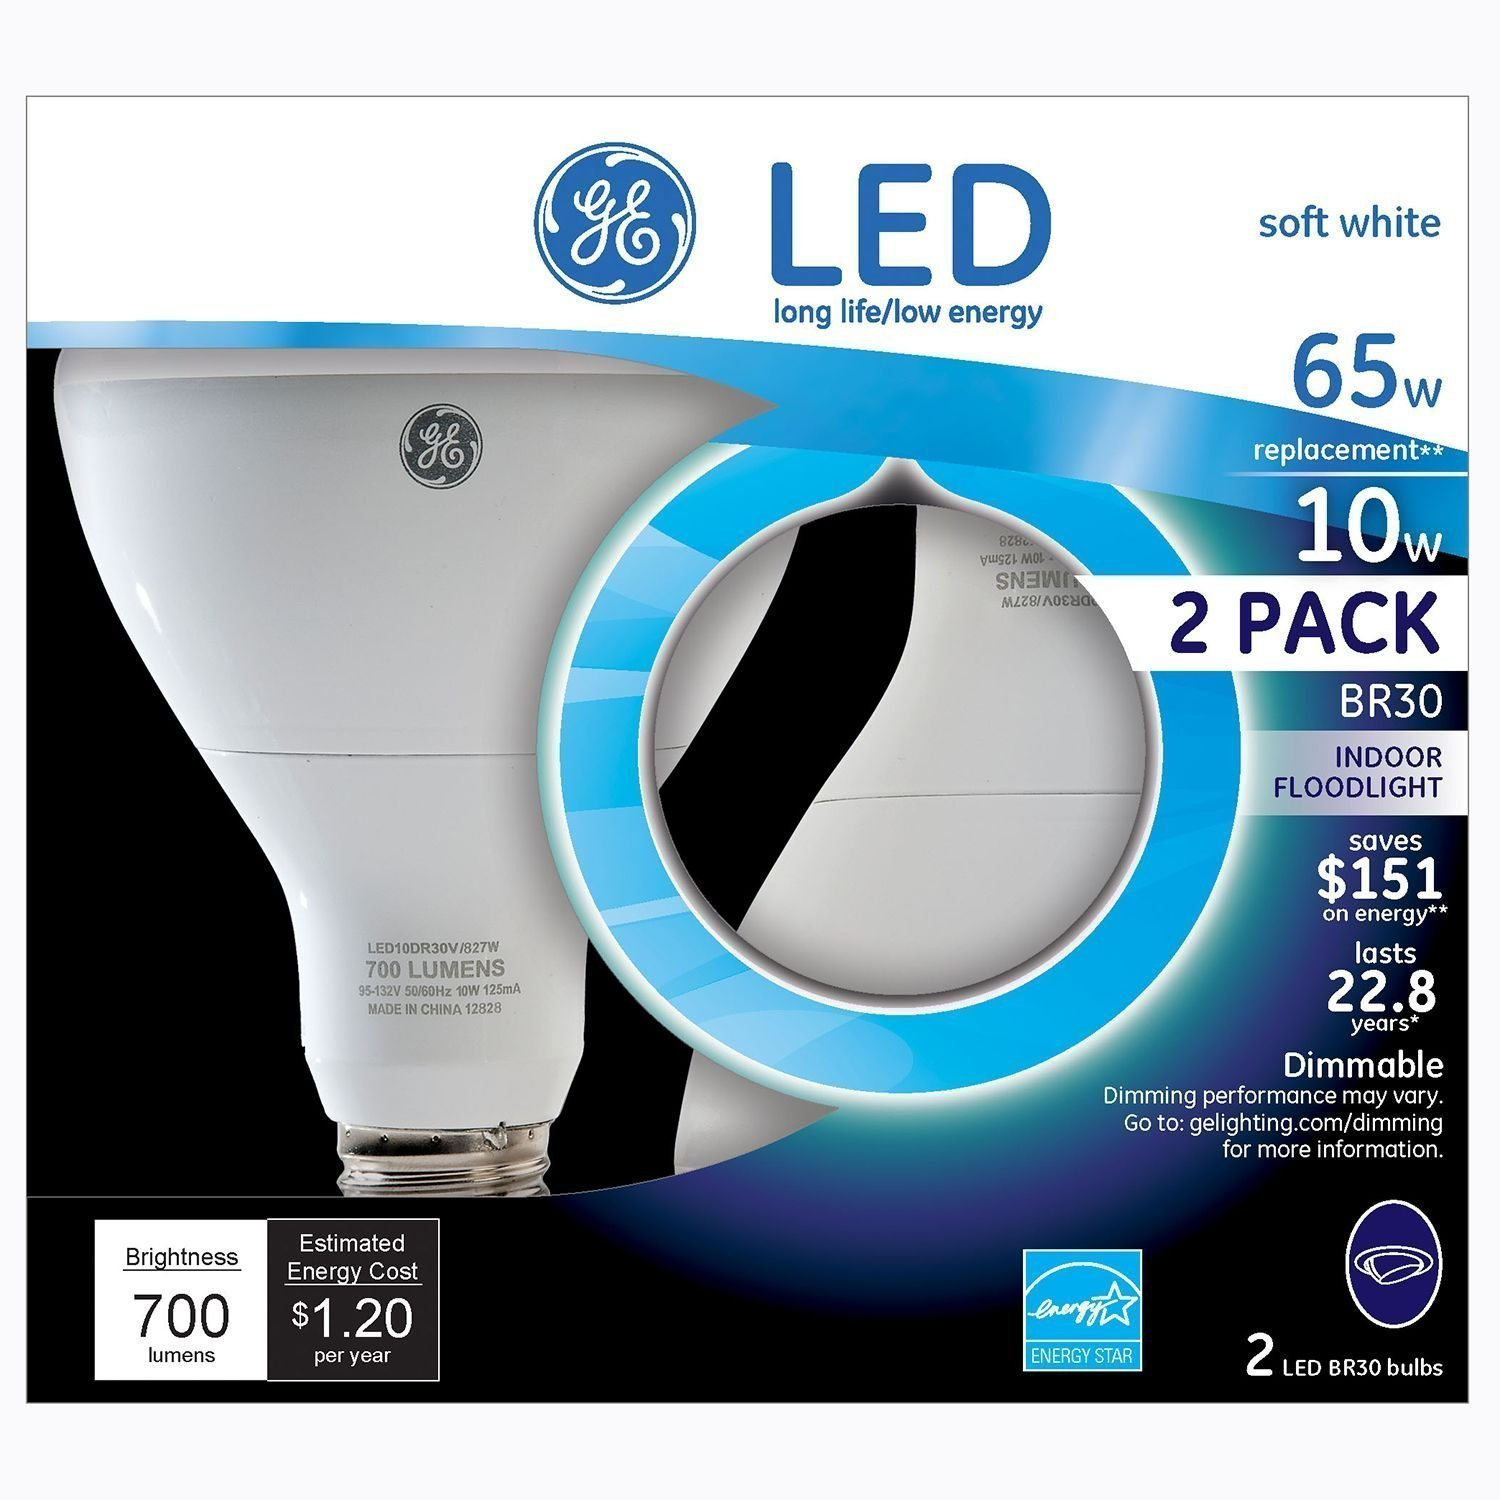 GE LED BR30 Indoor Floodlight Bulb (2 pk.) - Energy Star Certified